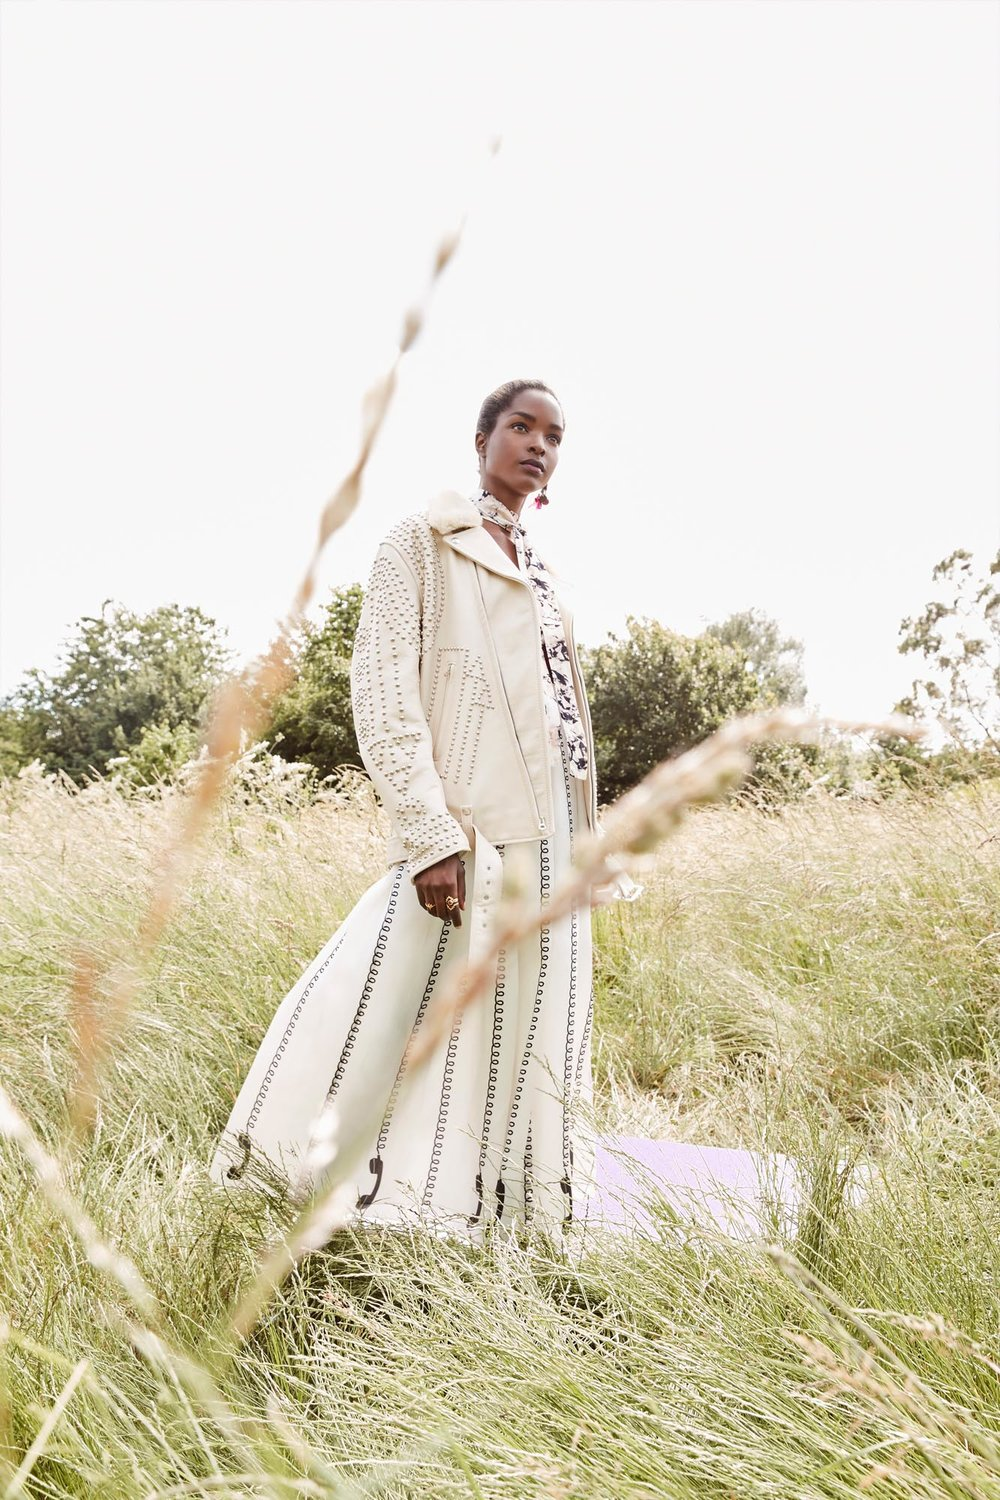 Outdoor shoot styled by Ellie Lines London